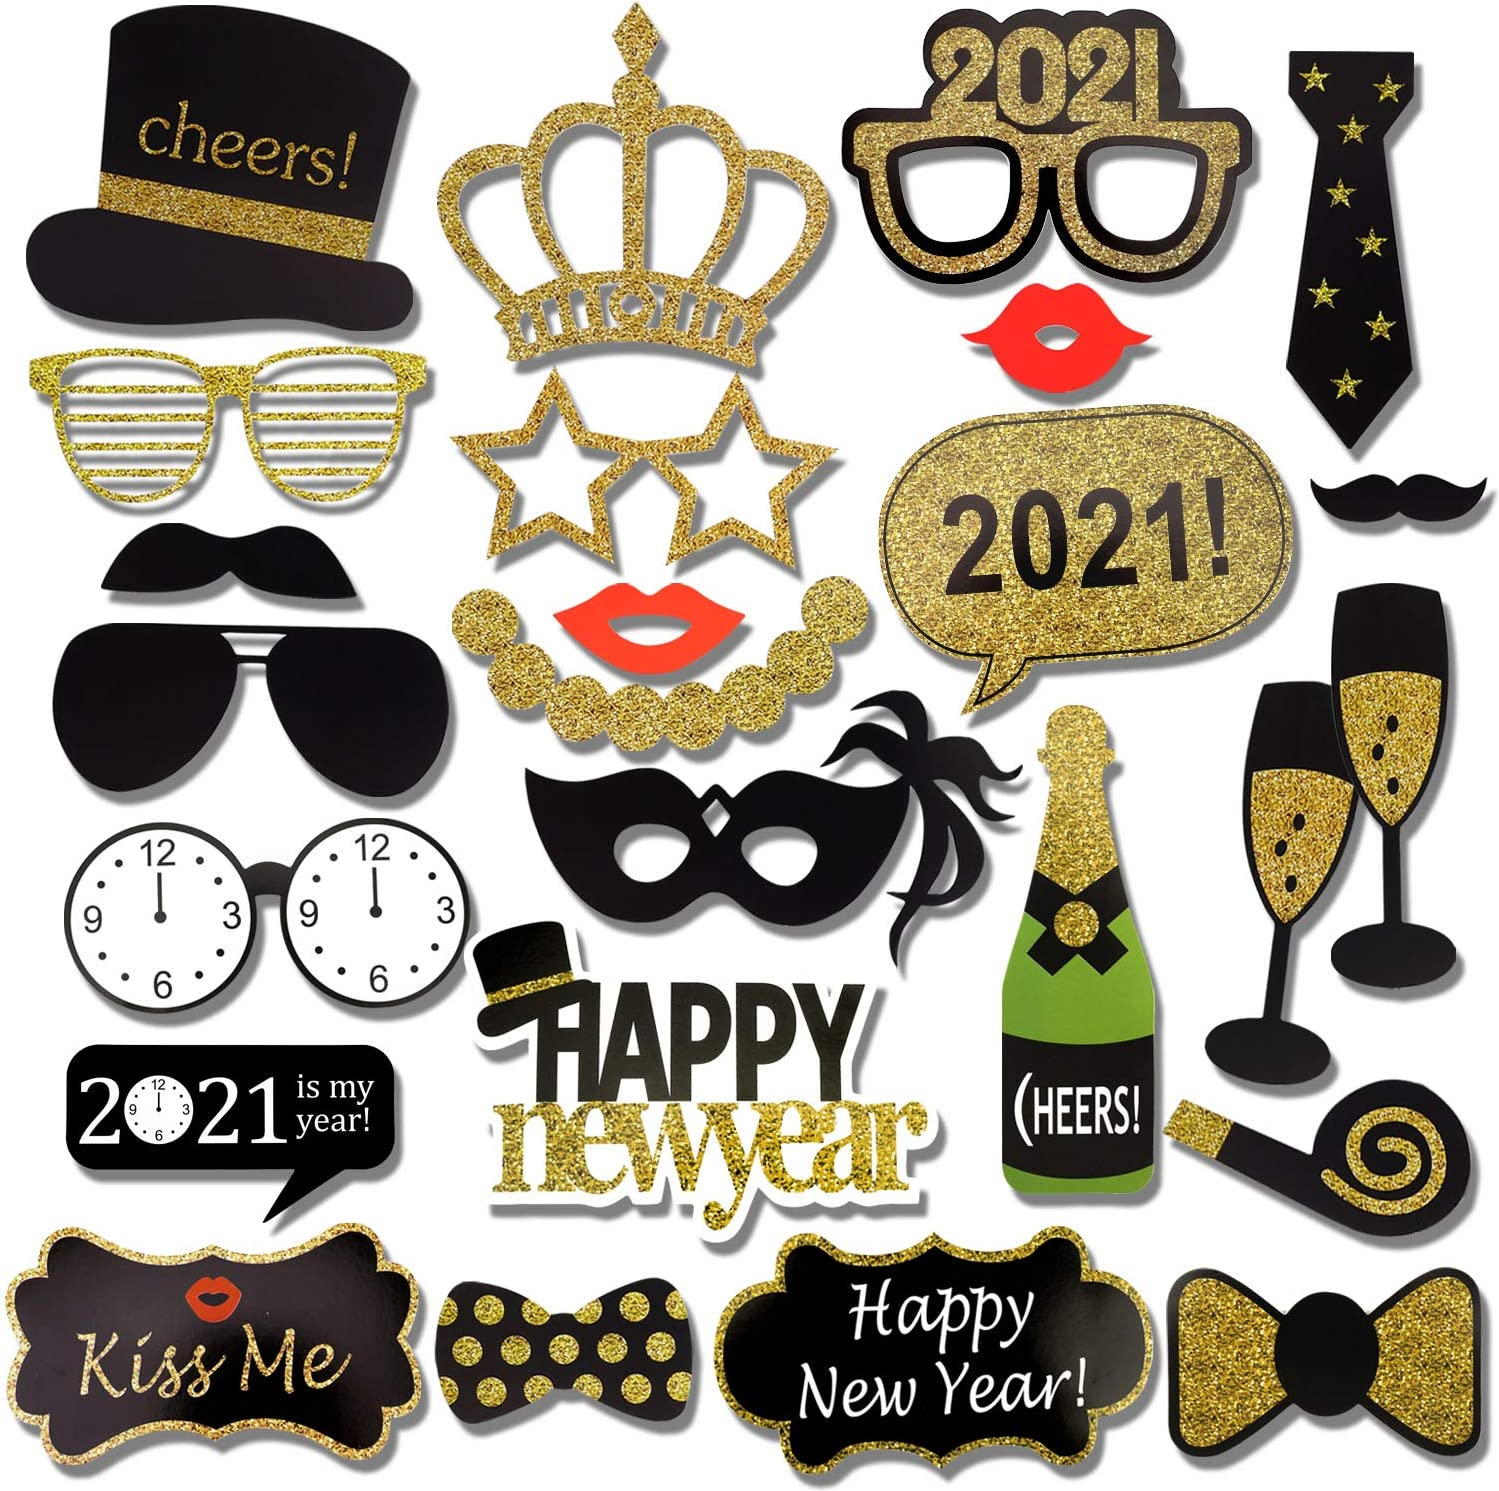 2021 New Years Photo Booth Props Kit(25Pcs), Konsait Funny New Years Eve Party Photo Booth with Stick for Adult Kids Women Man Party Accessories for 2021 New Year Party Decor Decoration Favor Supplies